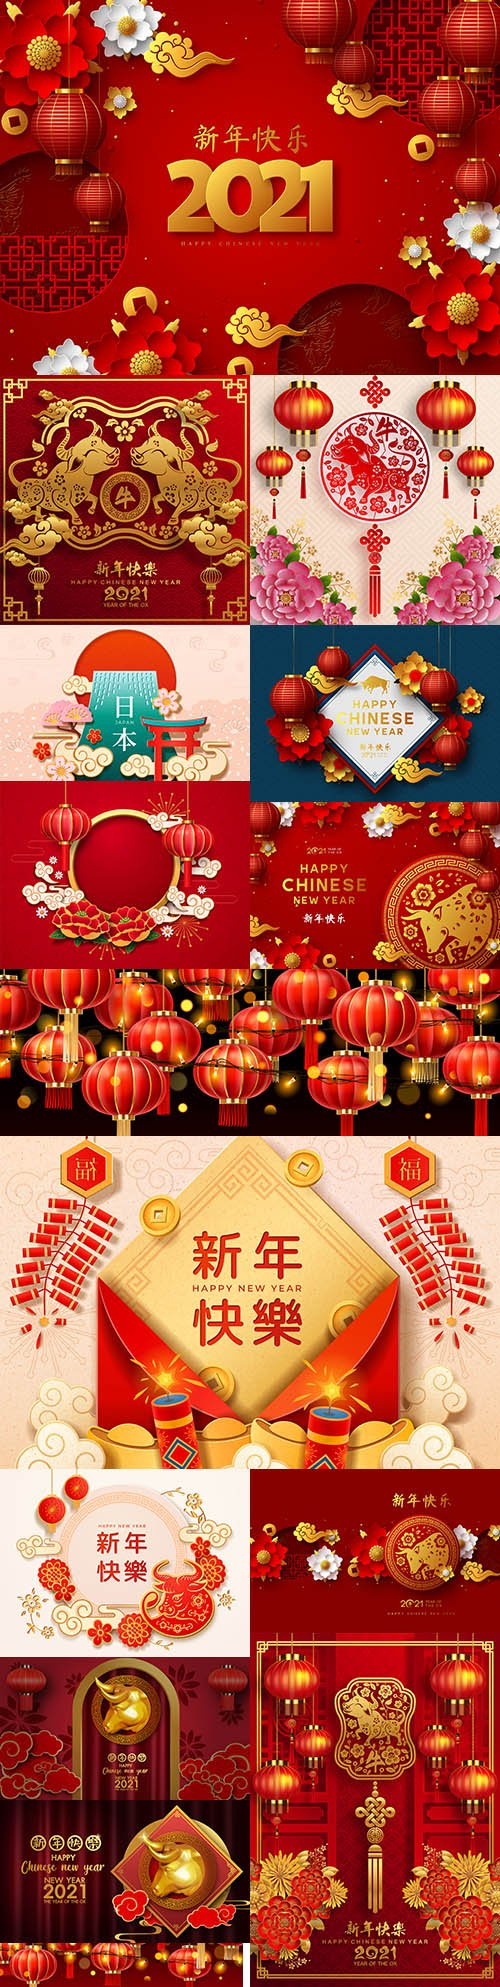 Chinese New Year 2021 with decorative flowers and lights